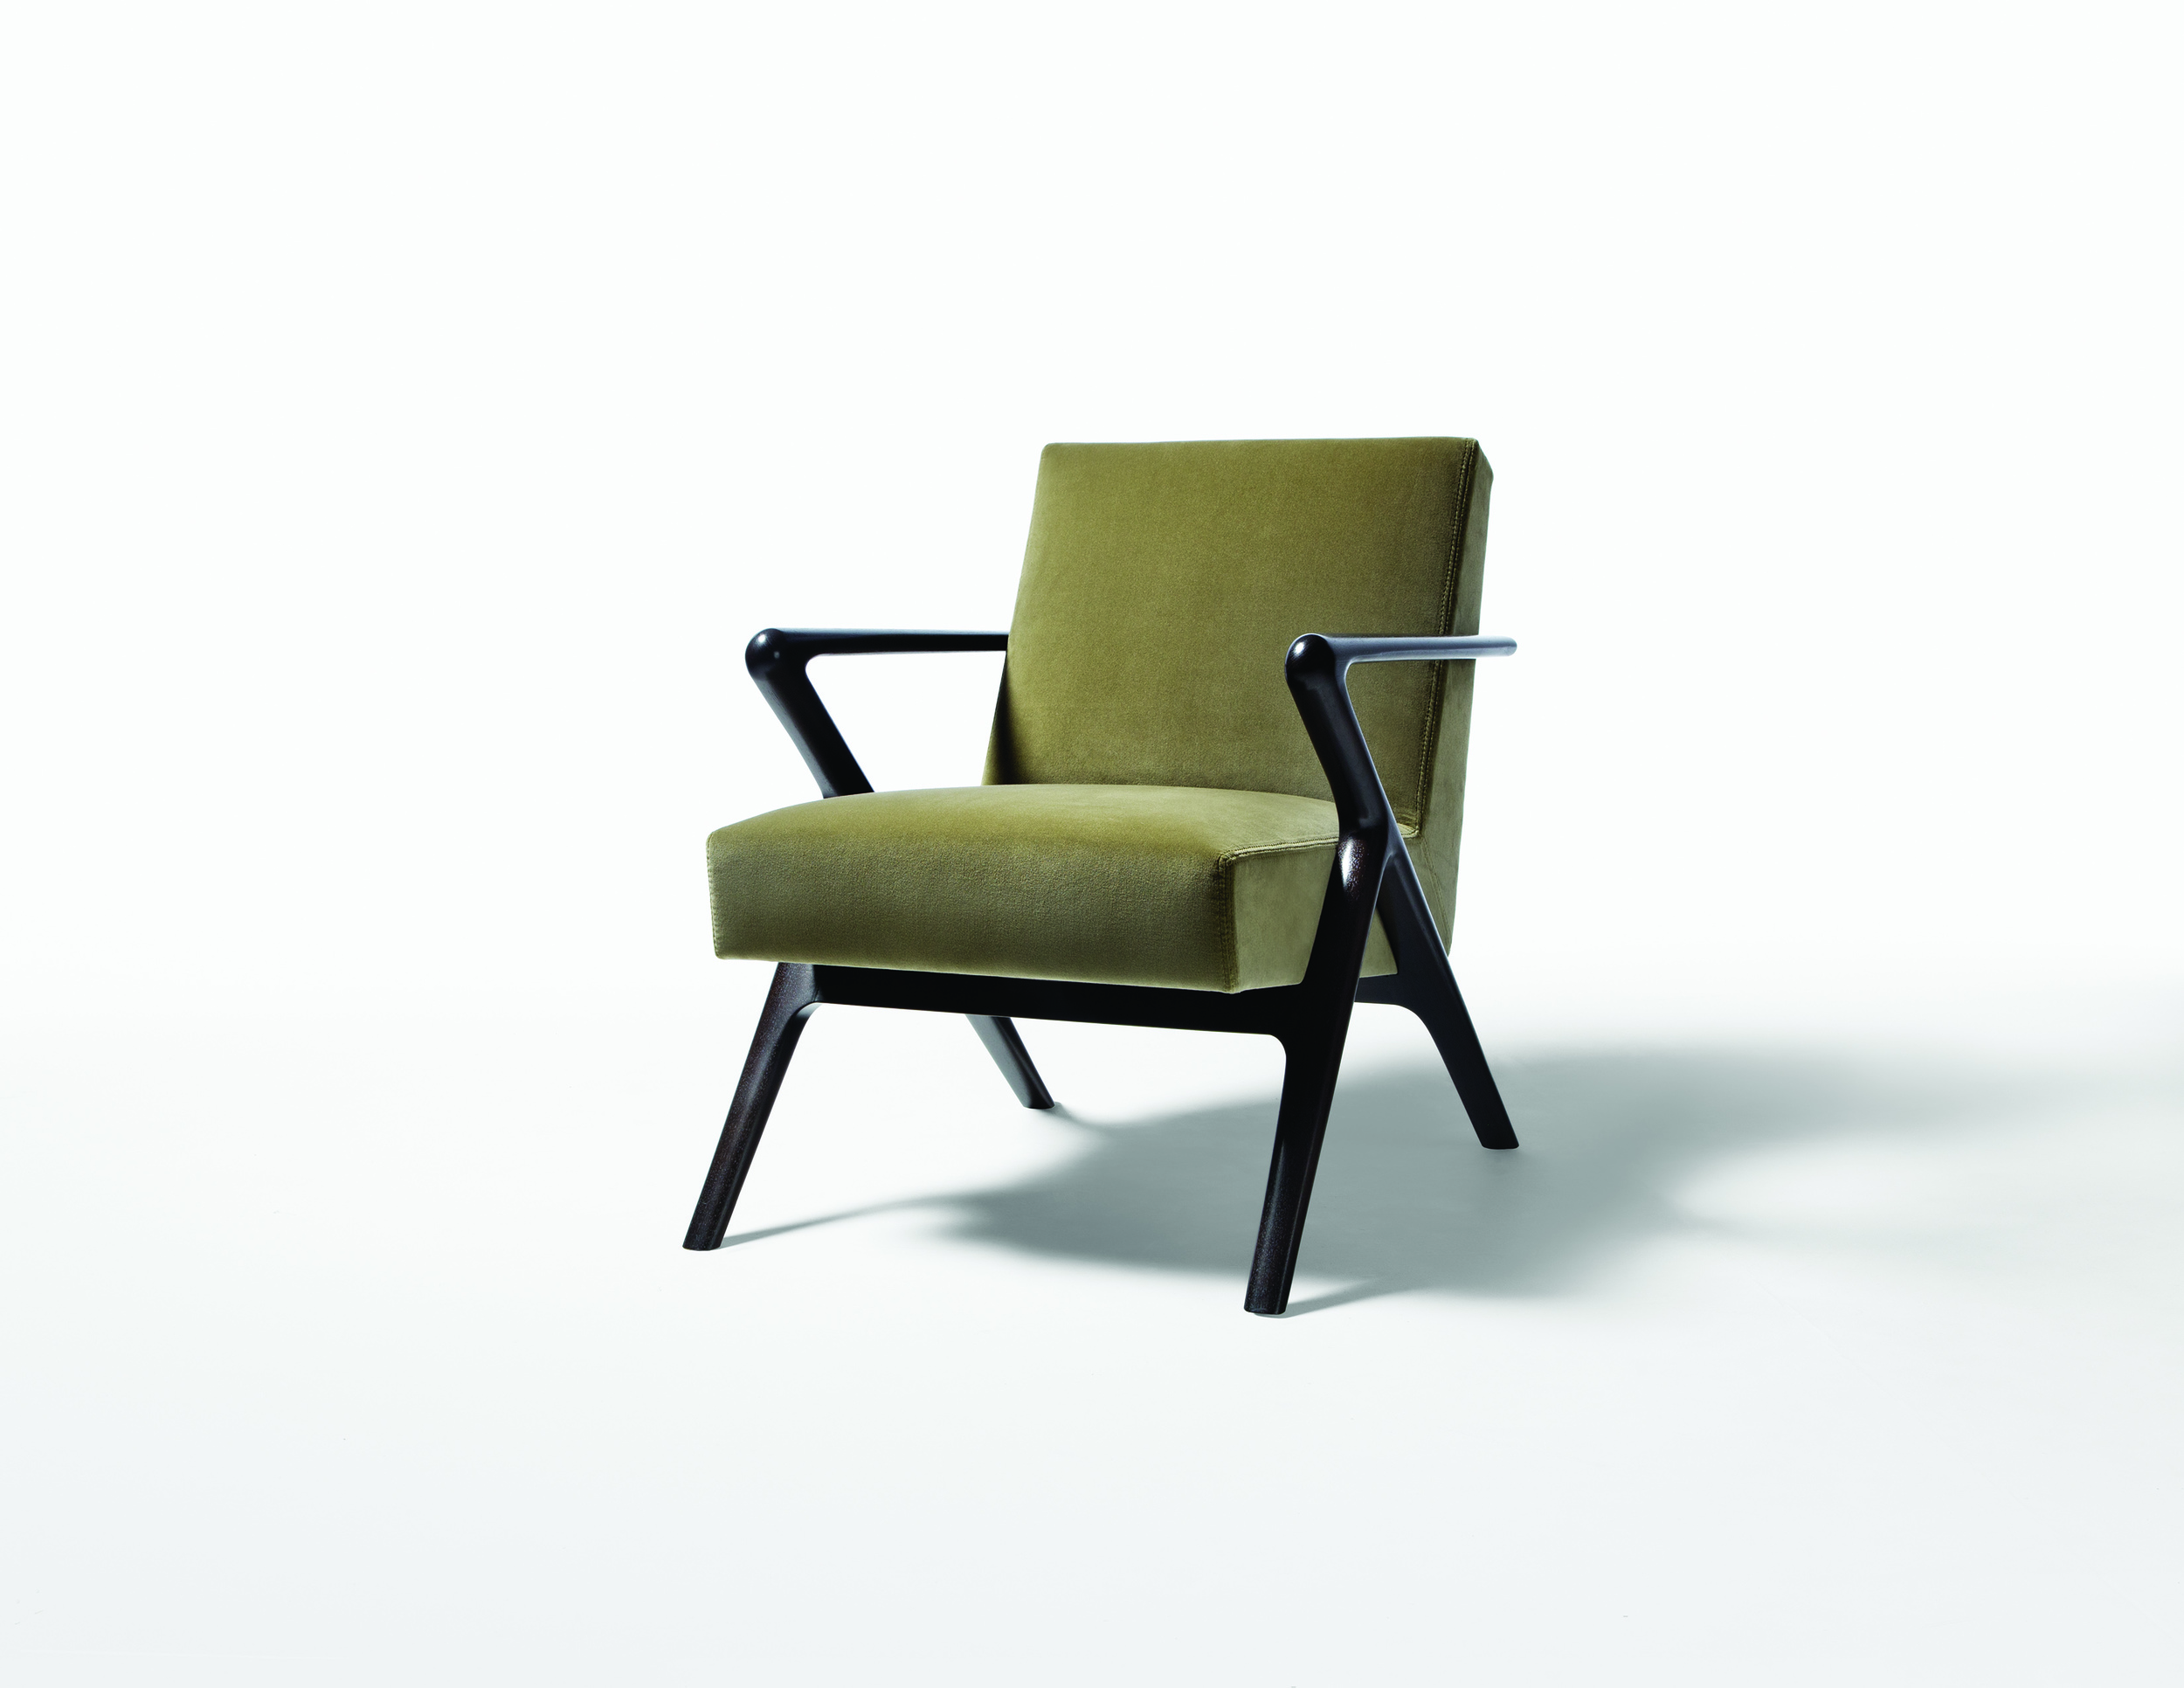 Capri Lounge Chair by Holly Hunt